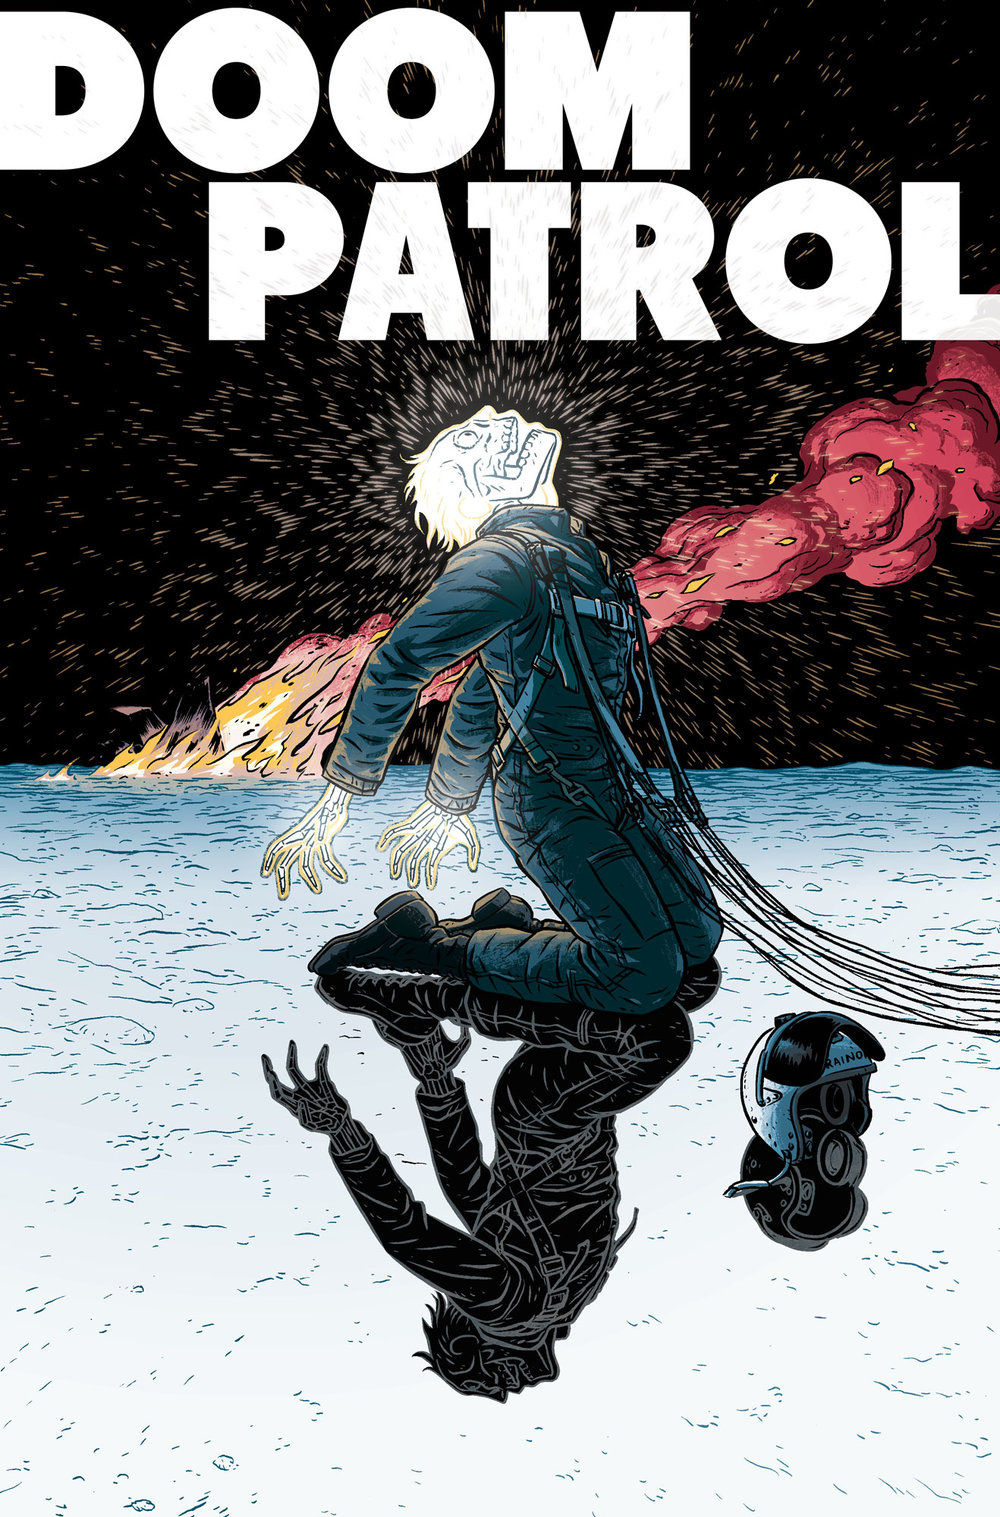 Doom Patrol - Issue 2